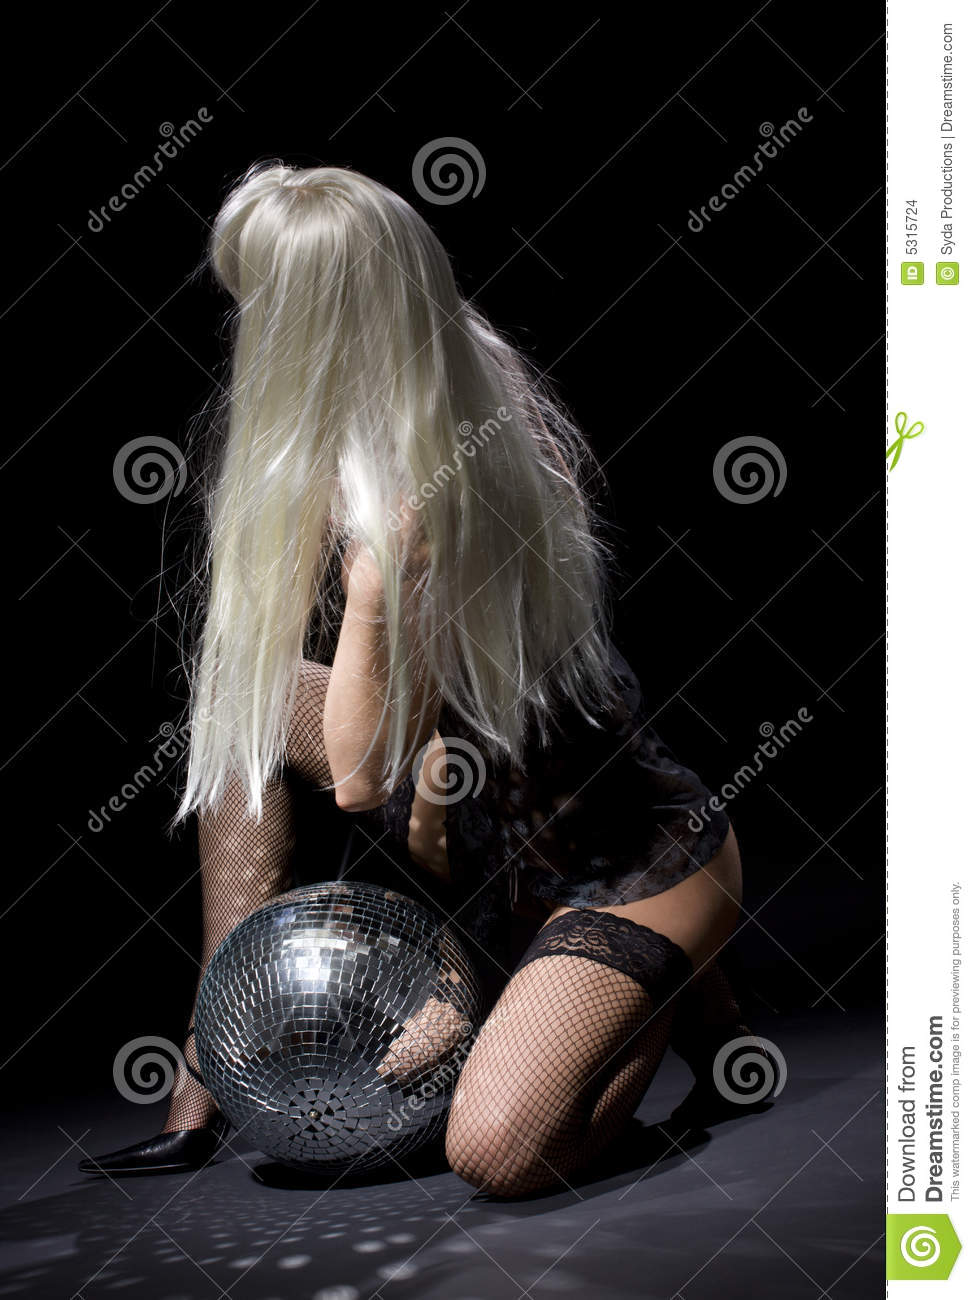 Download Ballo Scuro Del Glitterball Fotografia Stock - Immagine di gorgeous, nightlife: 5315724